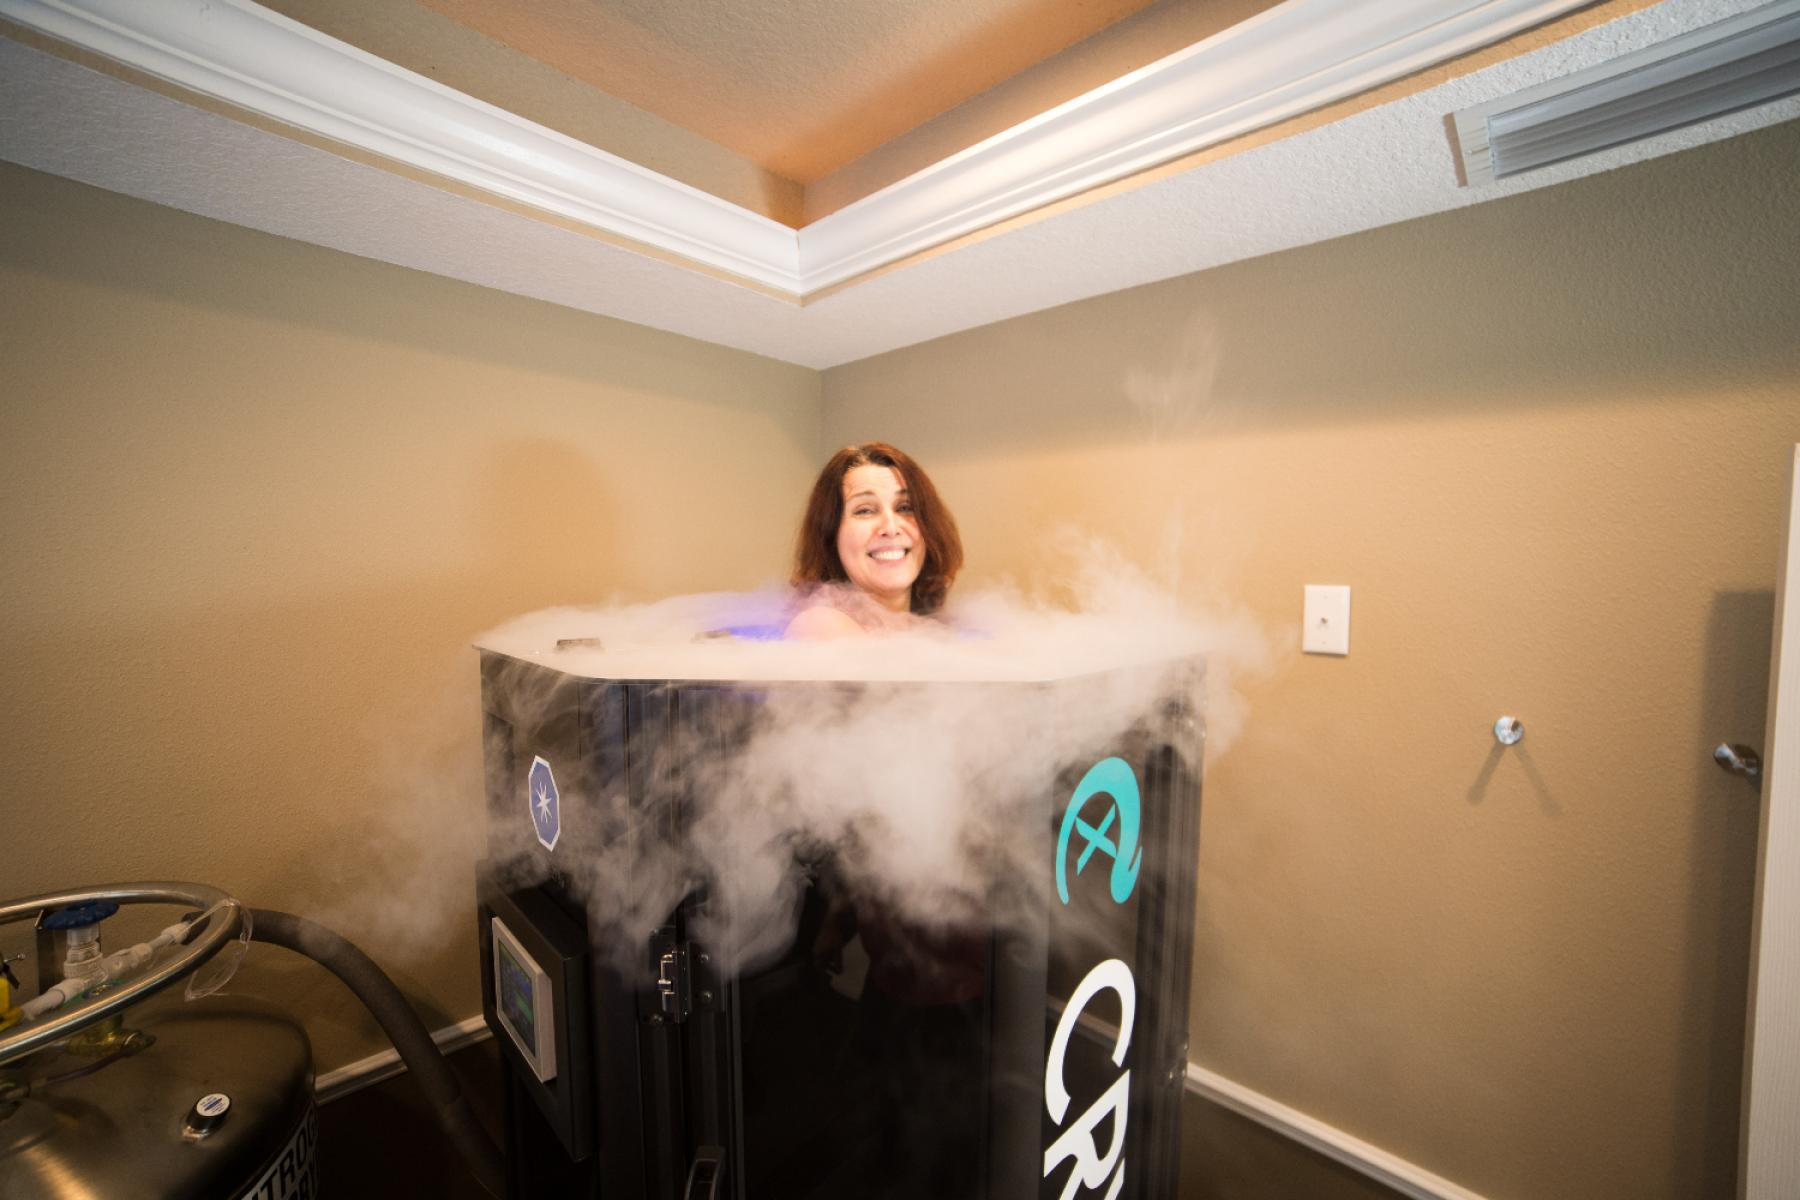 Cry-X Whole Body Cryotherapy Hangover Cure Day!